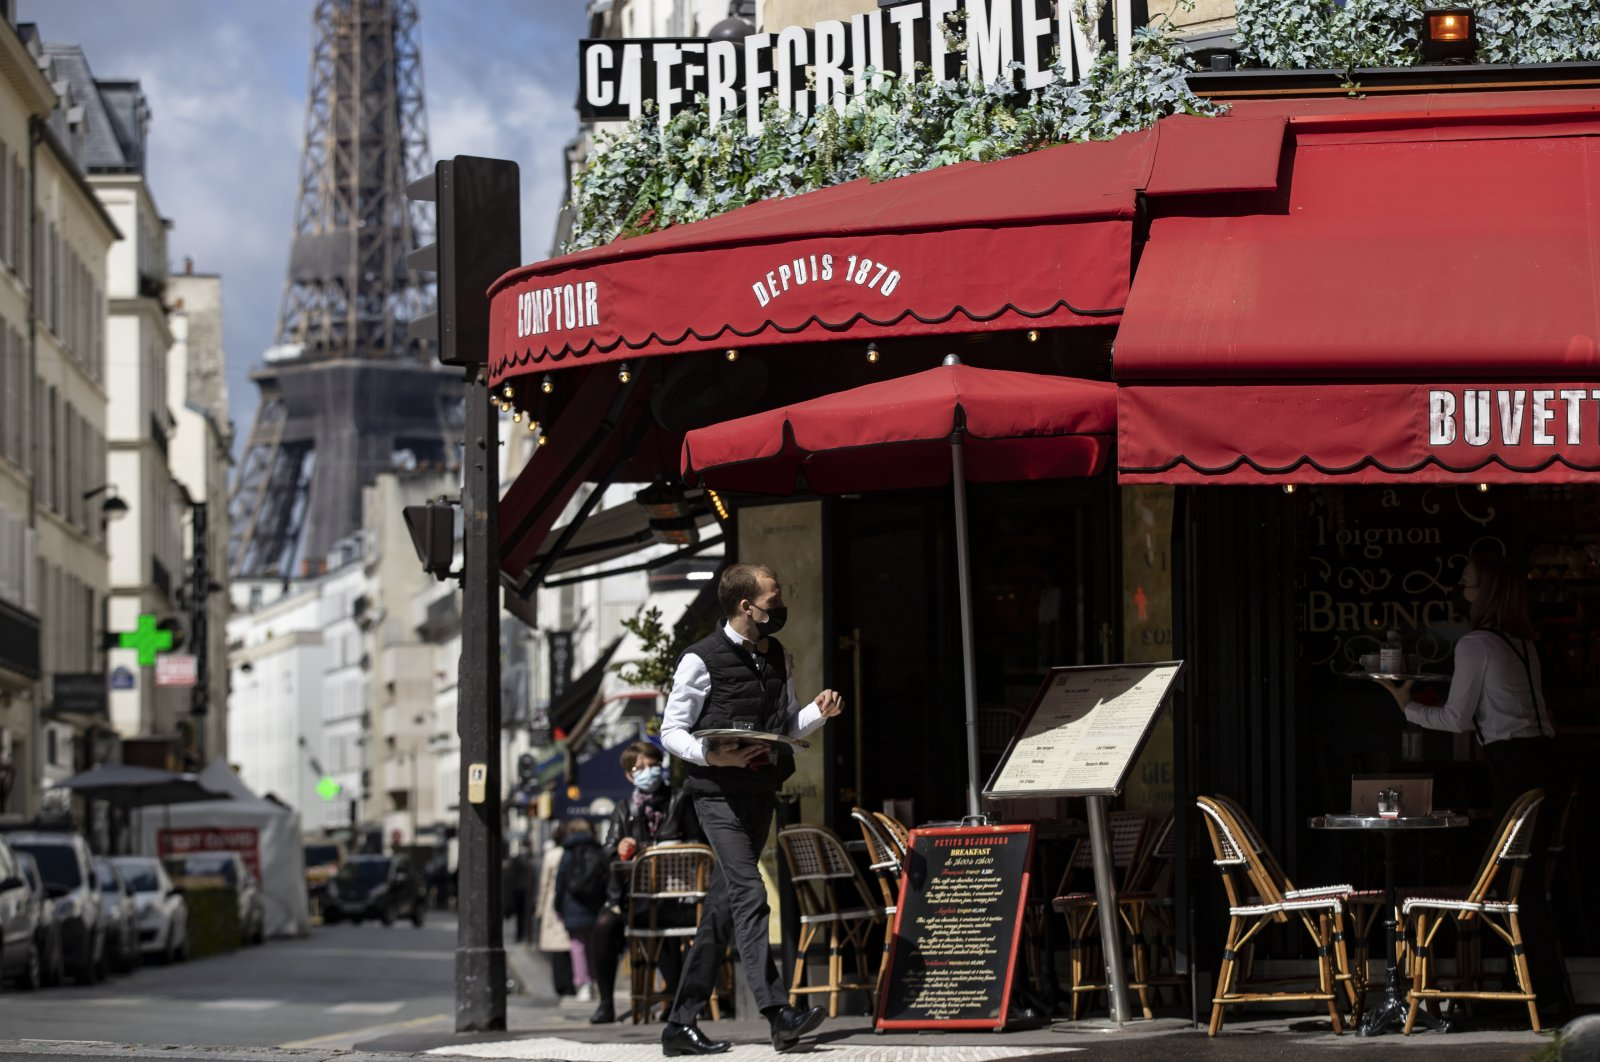 A waiter serves beverages on a cafe's terrace near the Eiffel Tower during the reopening of restaurant terraces and bars, Paris, France, May 19, 2021. (EPA-EFE Photo)